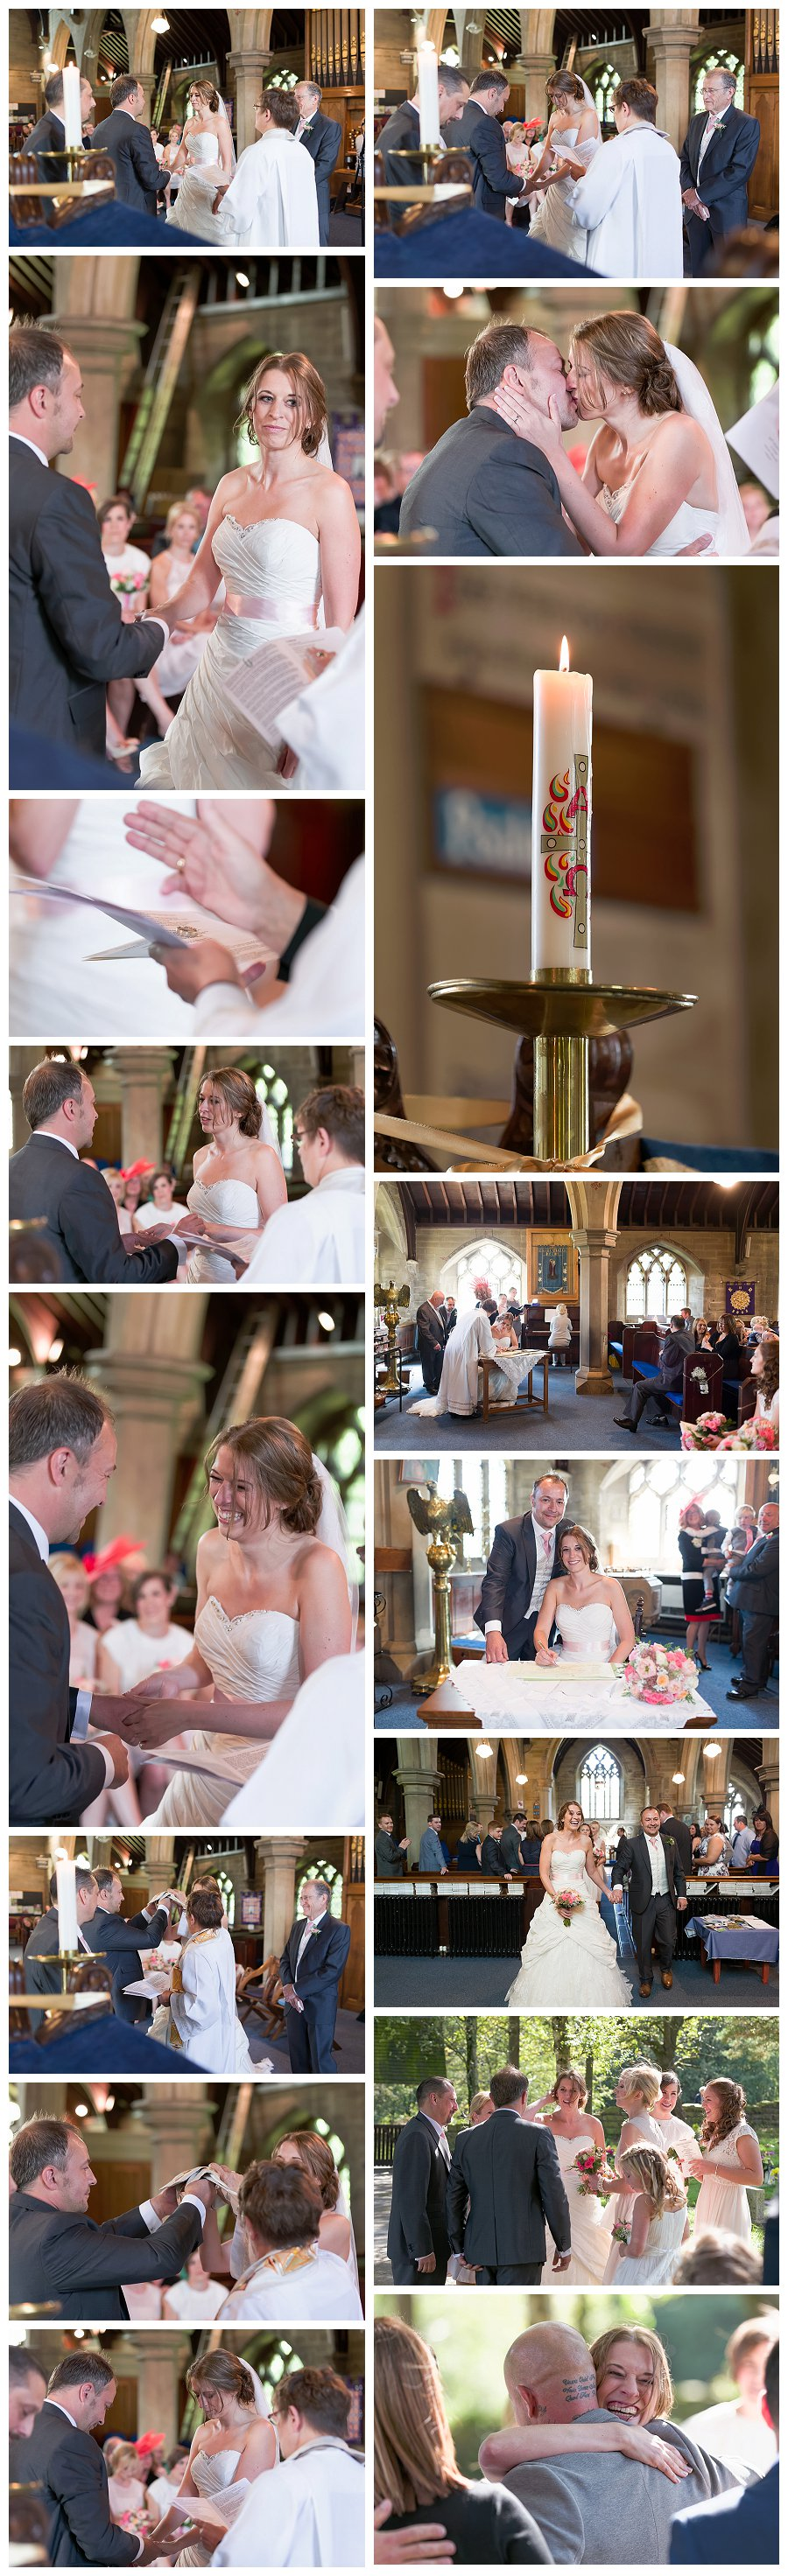 wedding photography Meltham, papakata tipi wedding photographers